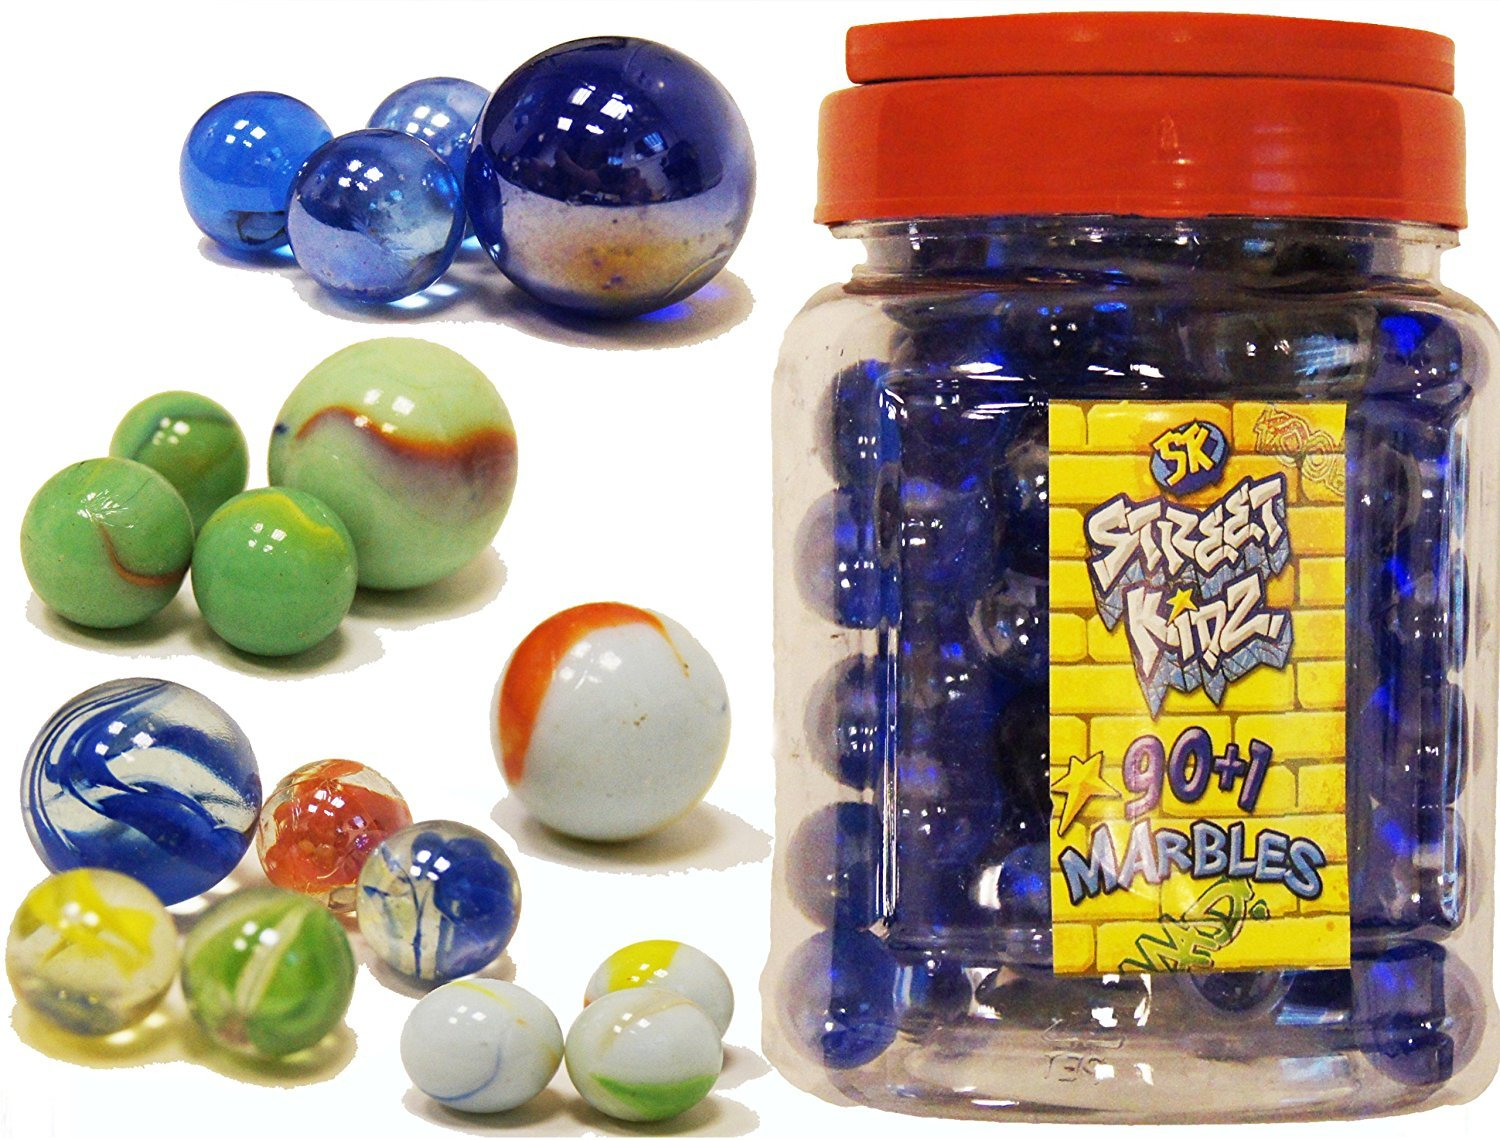 90+1 Glass Marbles Toy in a Jar Standard Size 16mm for Marble Run Game Street Kidz